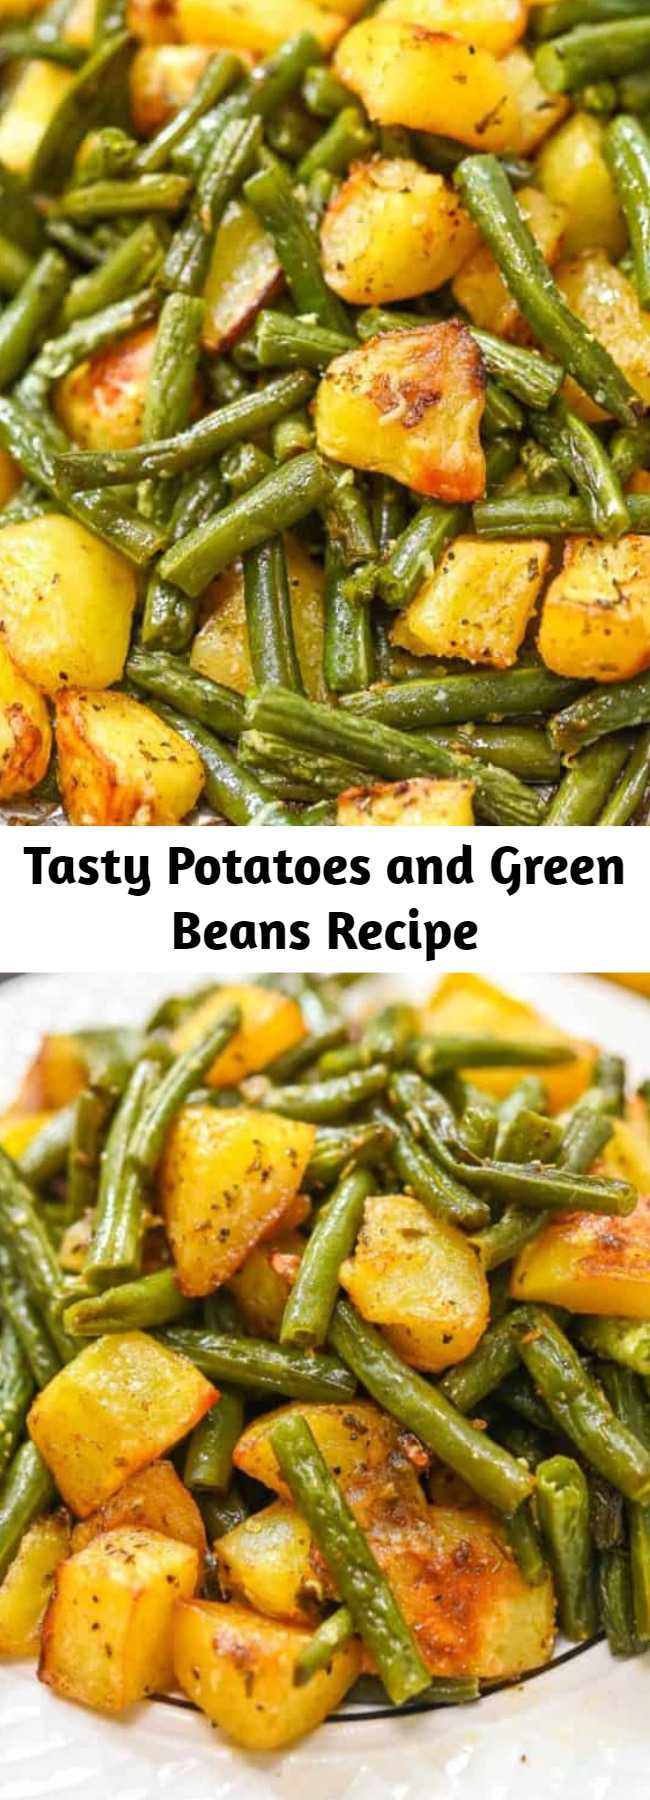 Tasty Potatoes and Green Beans Recipe - These Potatoes and Green Beans are a tasty side dish that you'll absolutely love. Made with garlic and flavorful seasonings, this oven-roasted veggie dish is delicious. #vegan #vegetarian #healthyrecipe #thanksgiving #potatoes #greenbeans #glutenfree